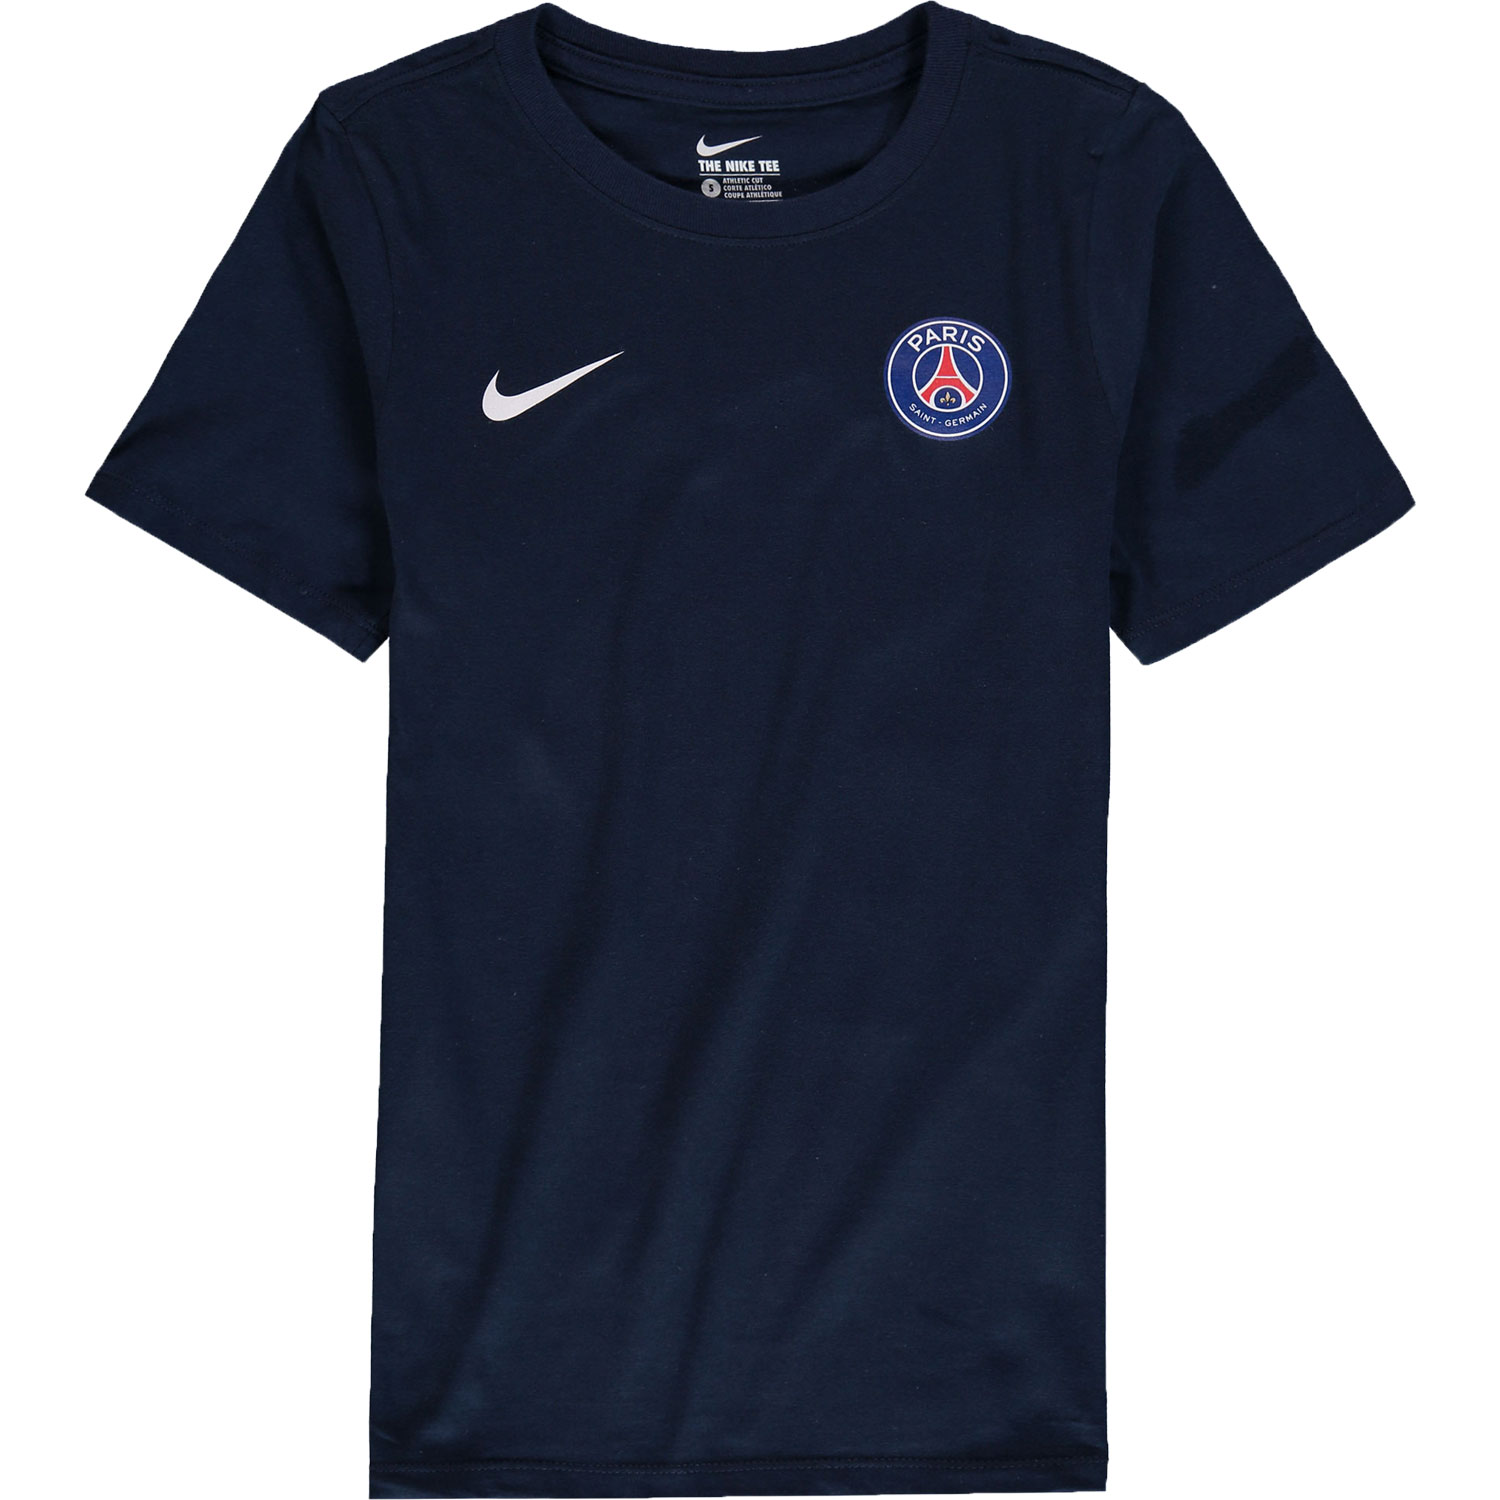 nike paris saint germain youth neymar jr hero ss t shirt. Black Bedroom Furniture Sets. Home Design Ideas